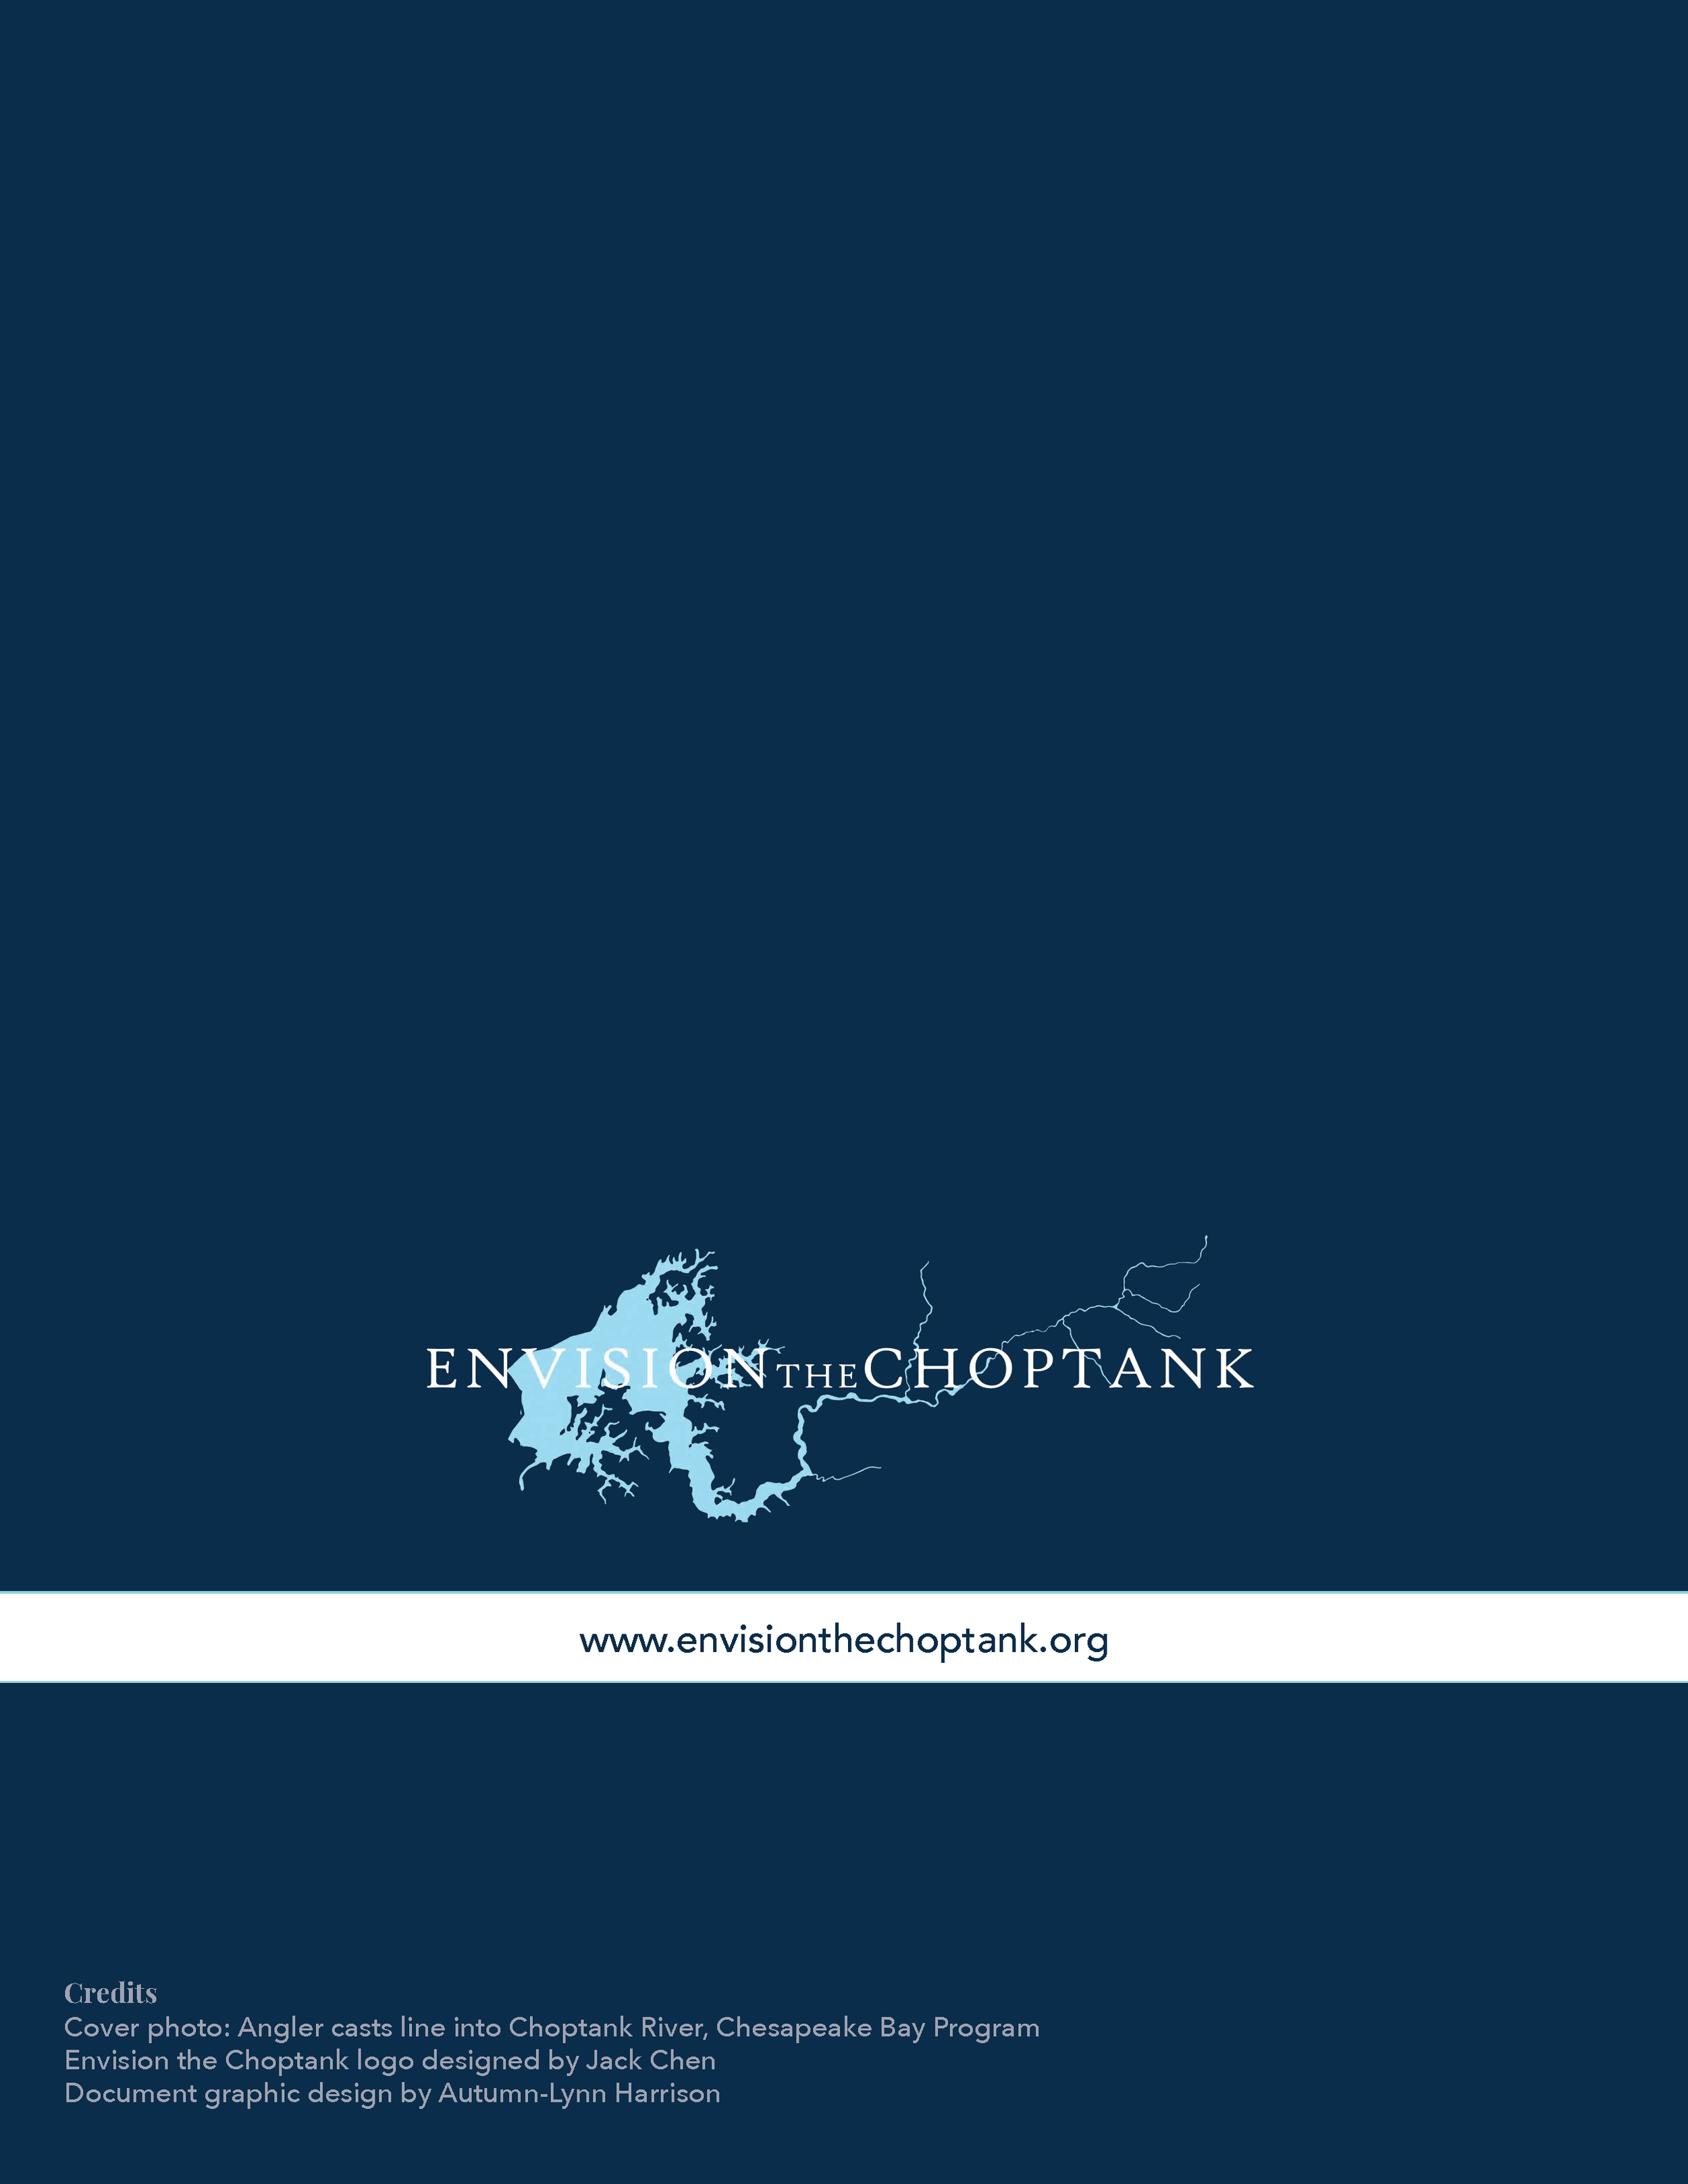 Final Digital Proof from Tray Inc. - J000441 Envision Choptank Newsletter_Page_28.png